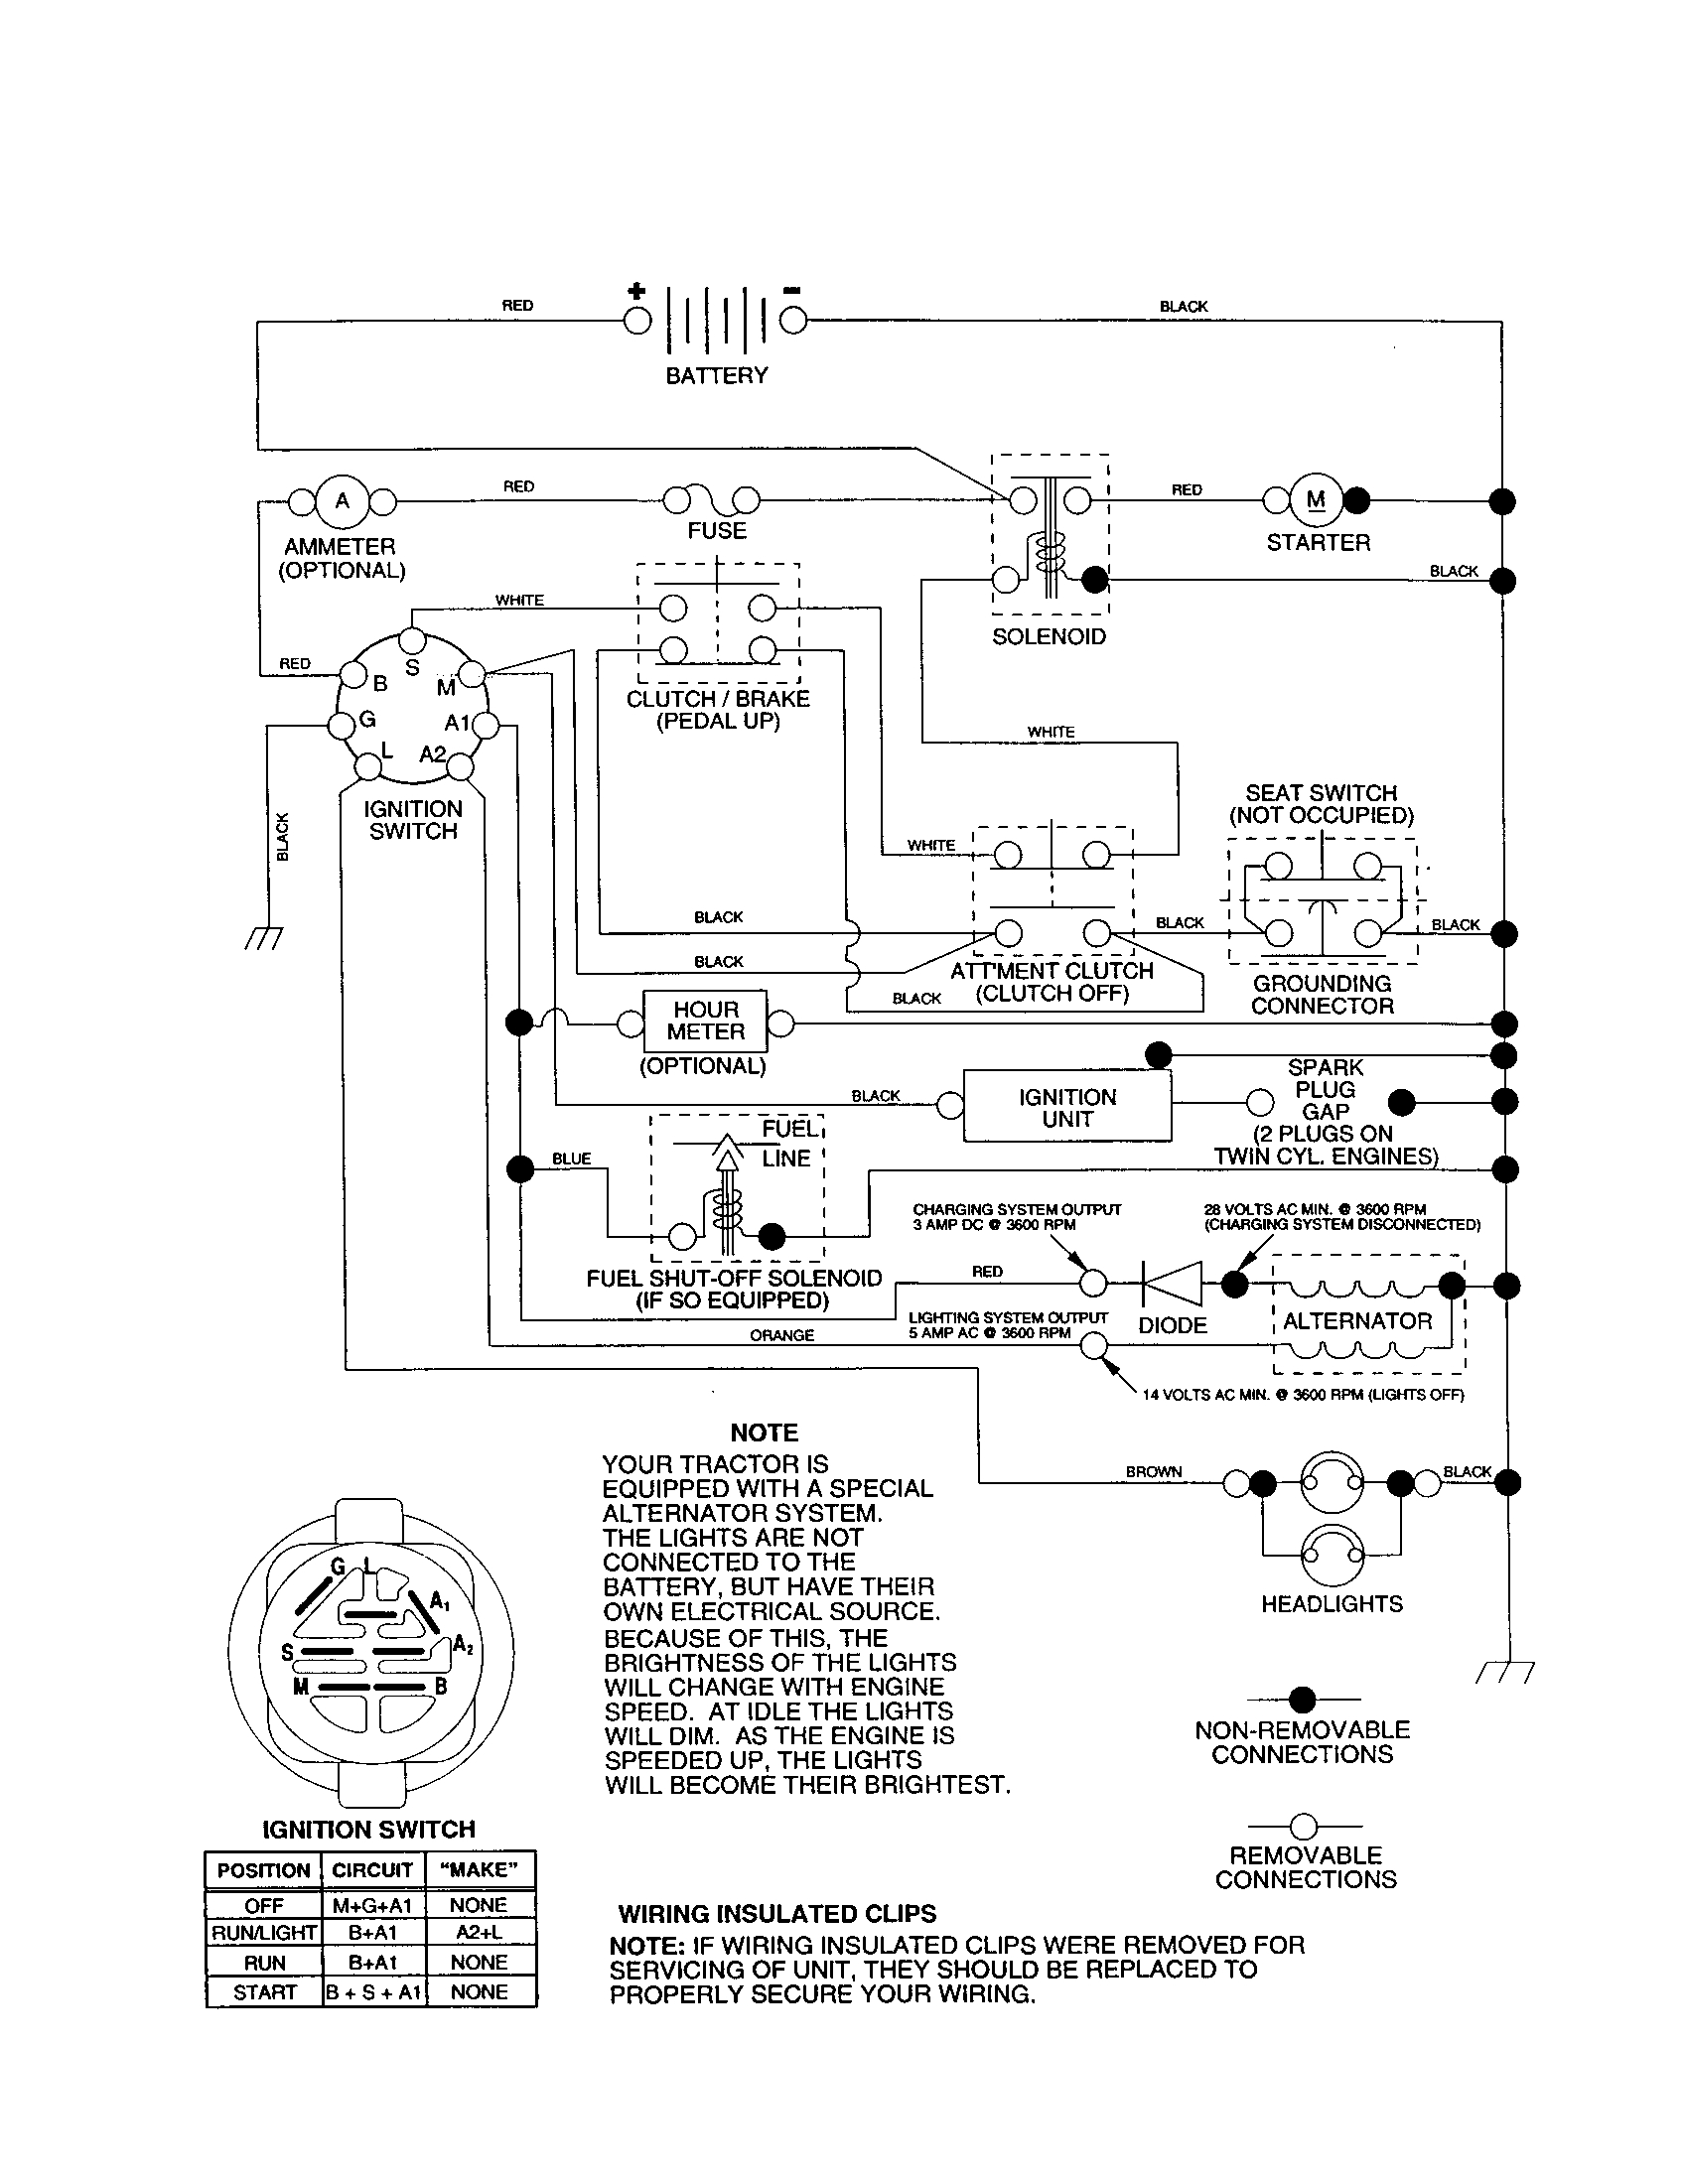 Briggs-Stratton Model 311707-0125-E1 Engine Genuine Parts - Briggs And Stratton Charging System Wiring Diagram